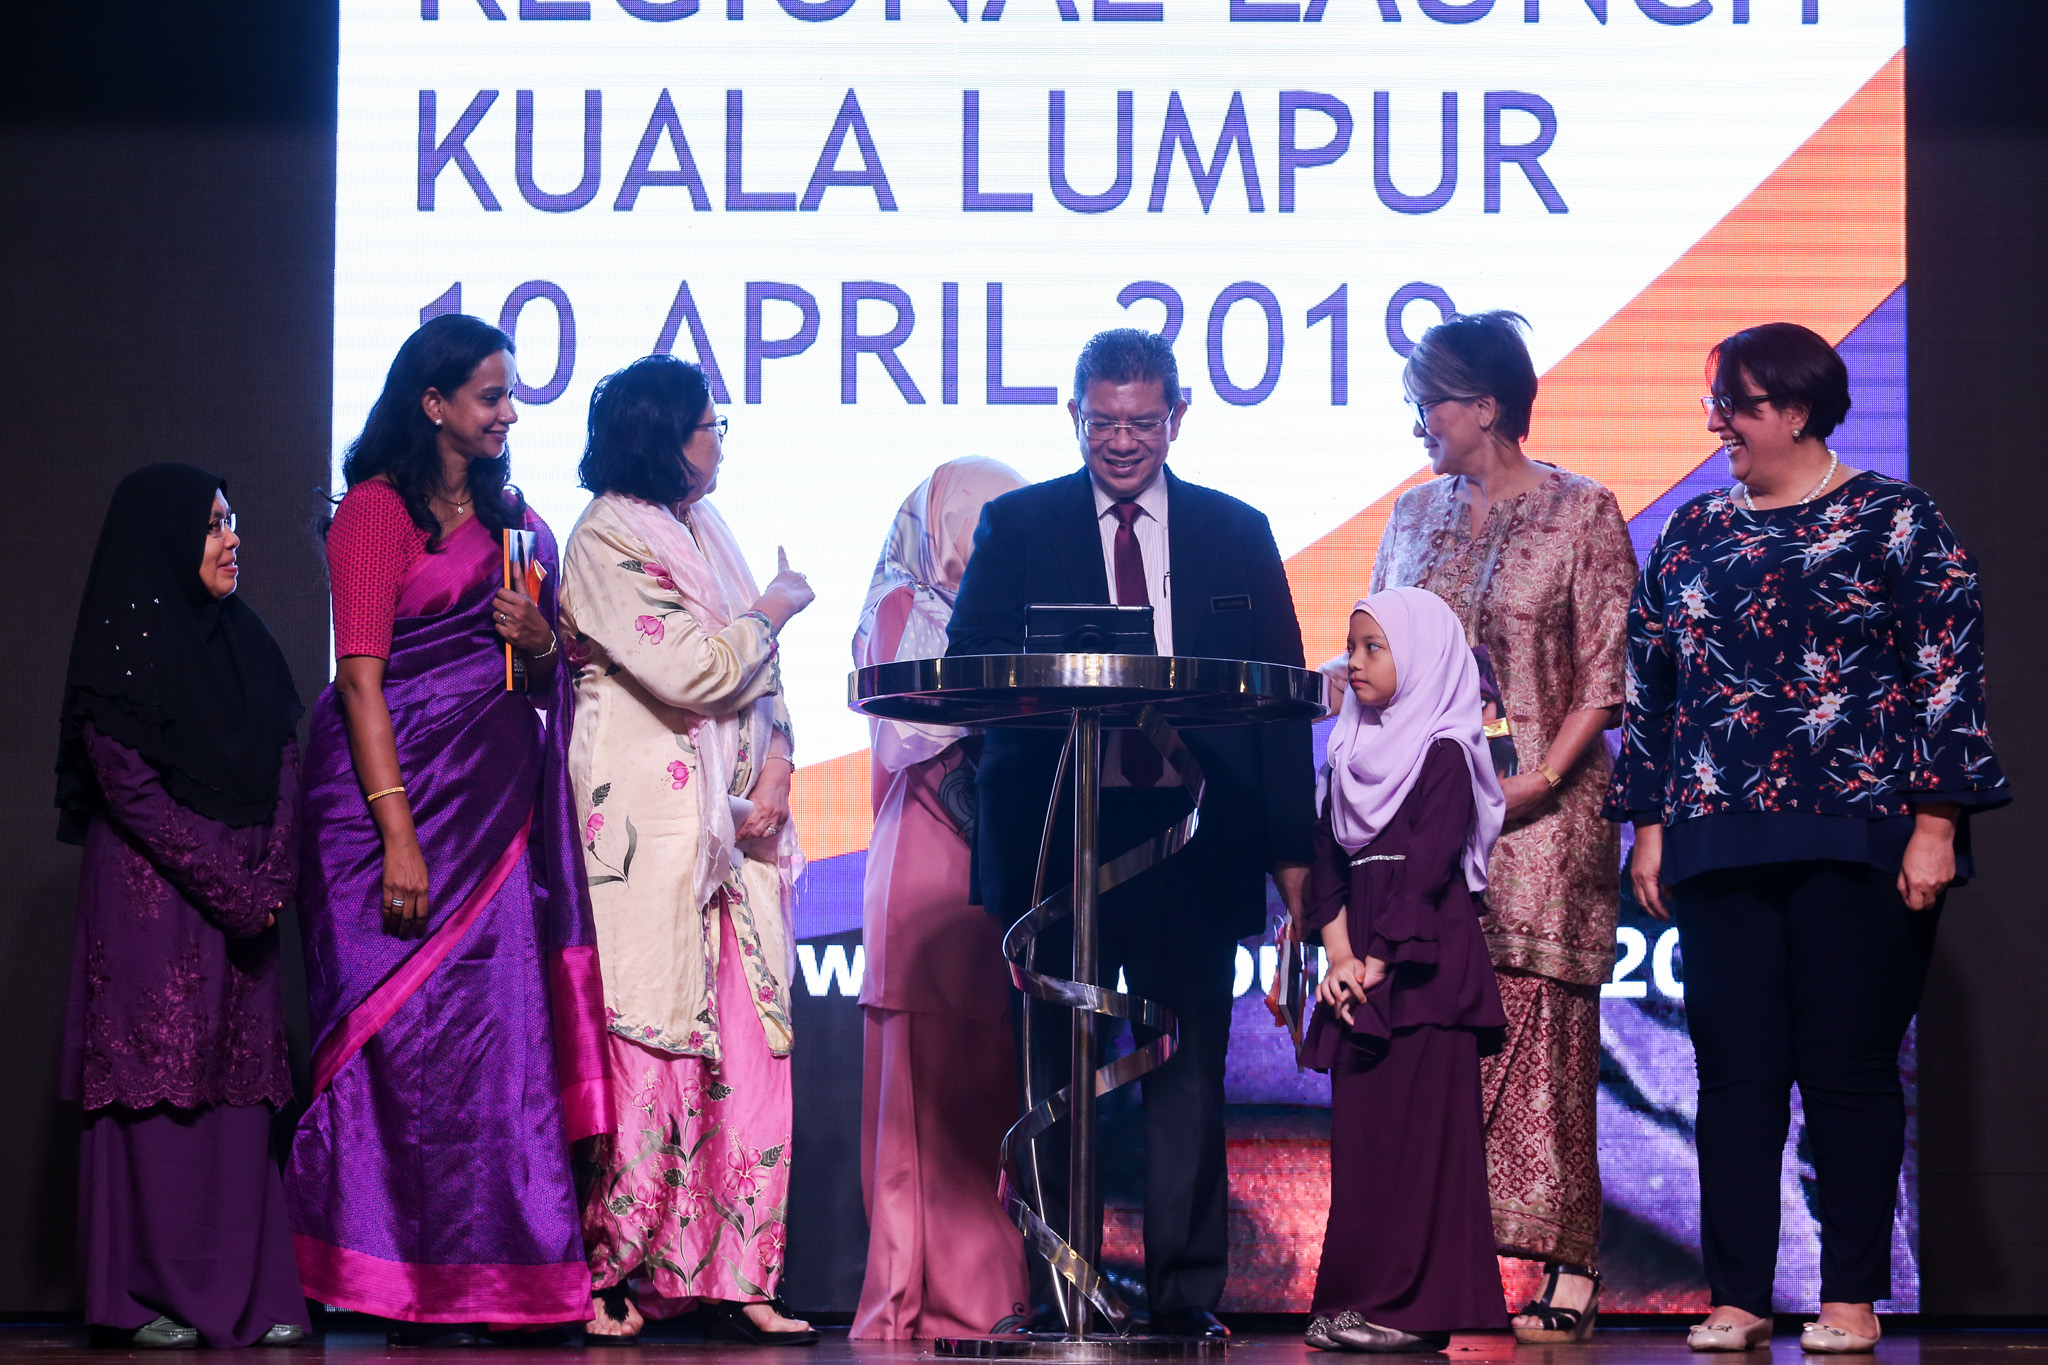 Foreign Minister Datuk Saifuddin Abdullah (centre) is pictured during the launch of the State of the World Population Report 2019 in Kuala Lumpur April 10, 2019. — Picture by Ahmad Zamzahuri